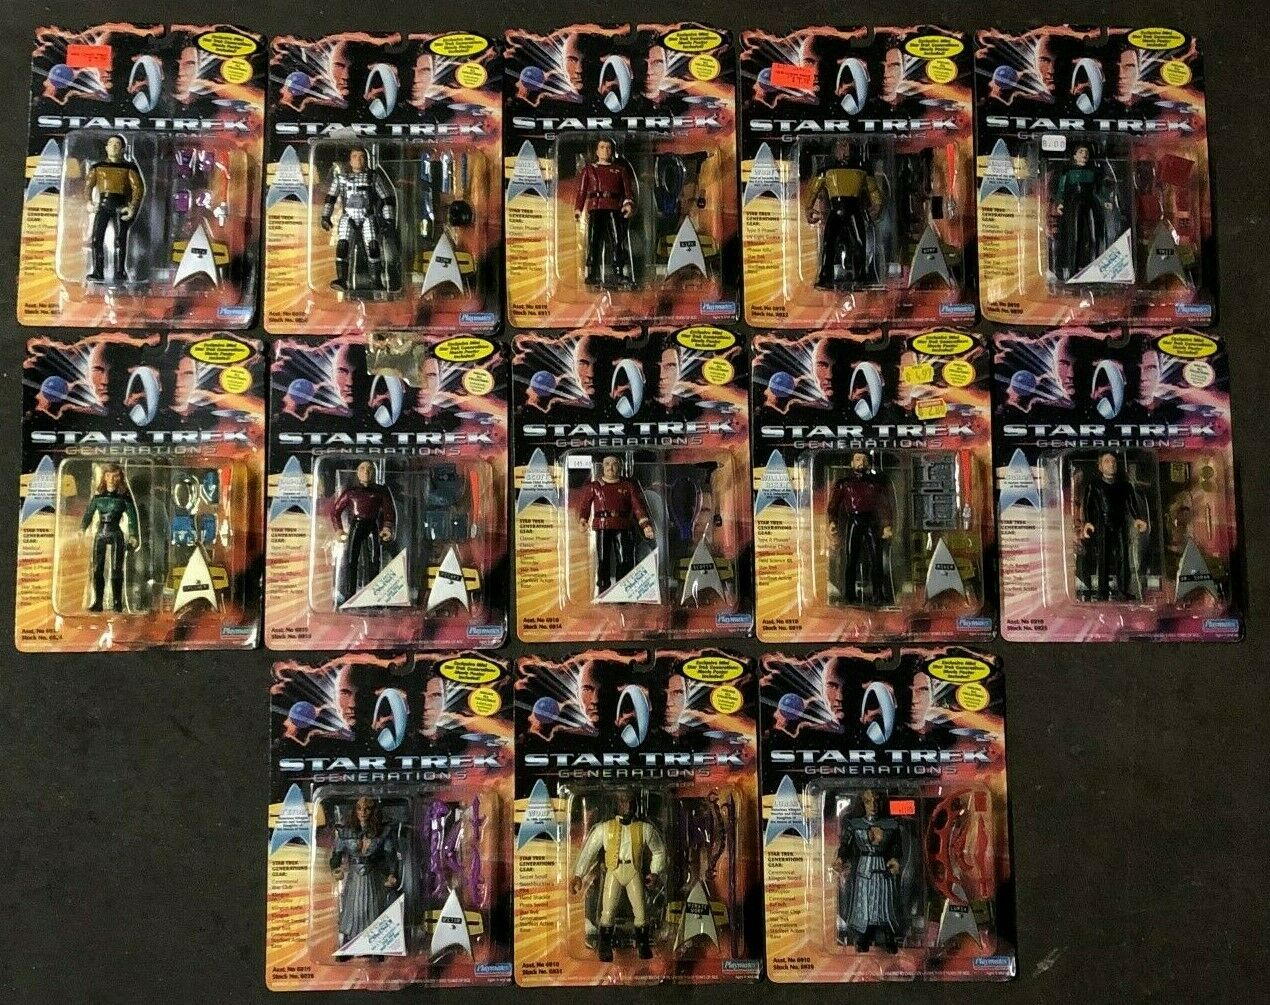 Lot Of 13x Star Trek Classic Movie Series Figure Lot of 10 by Playmates 1995 NOS